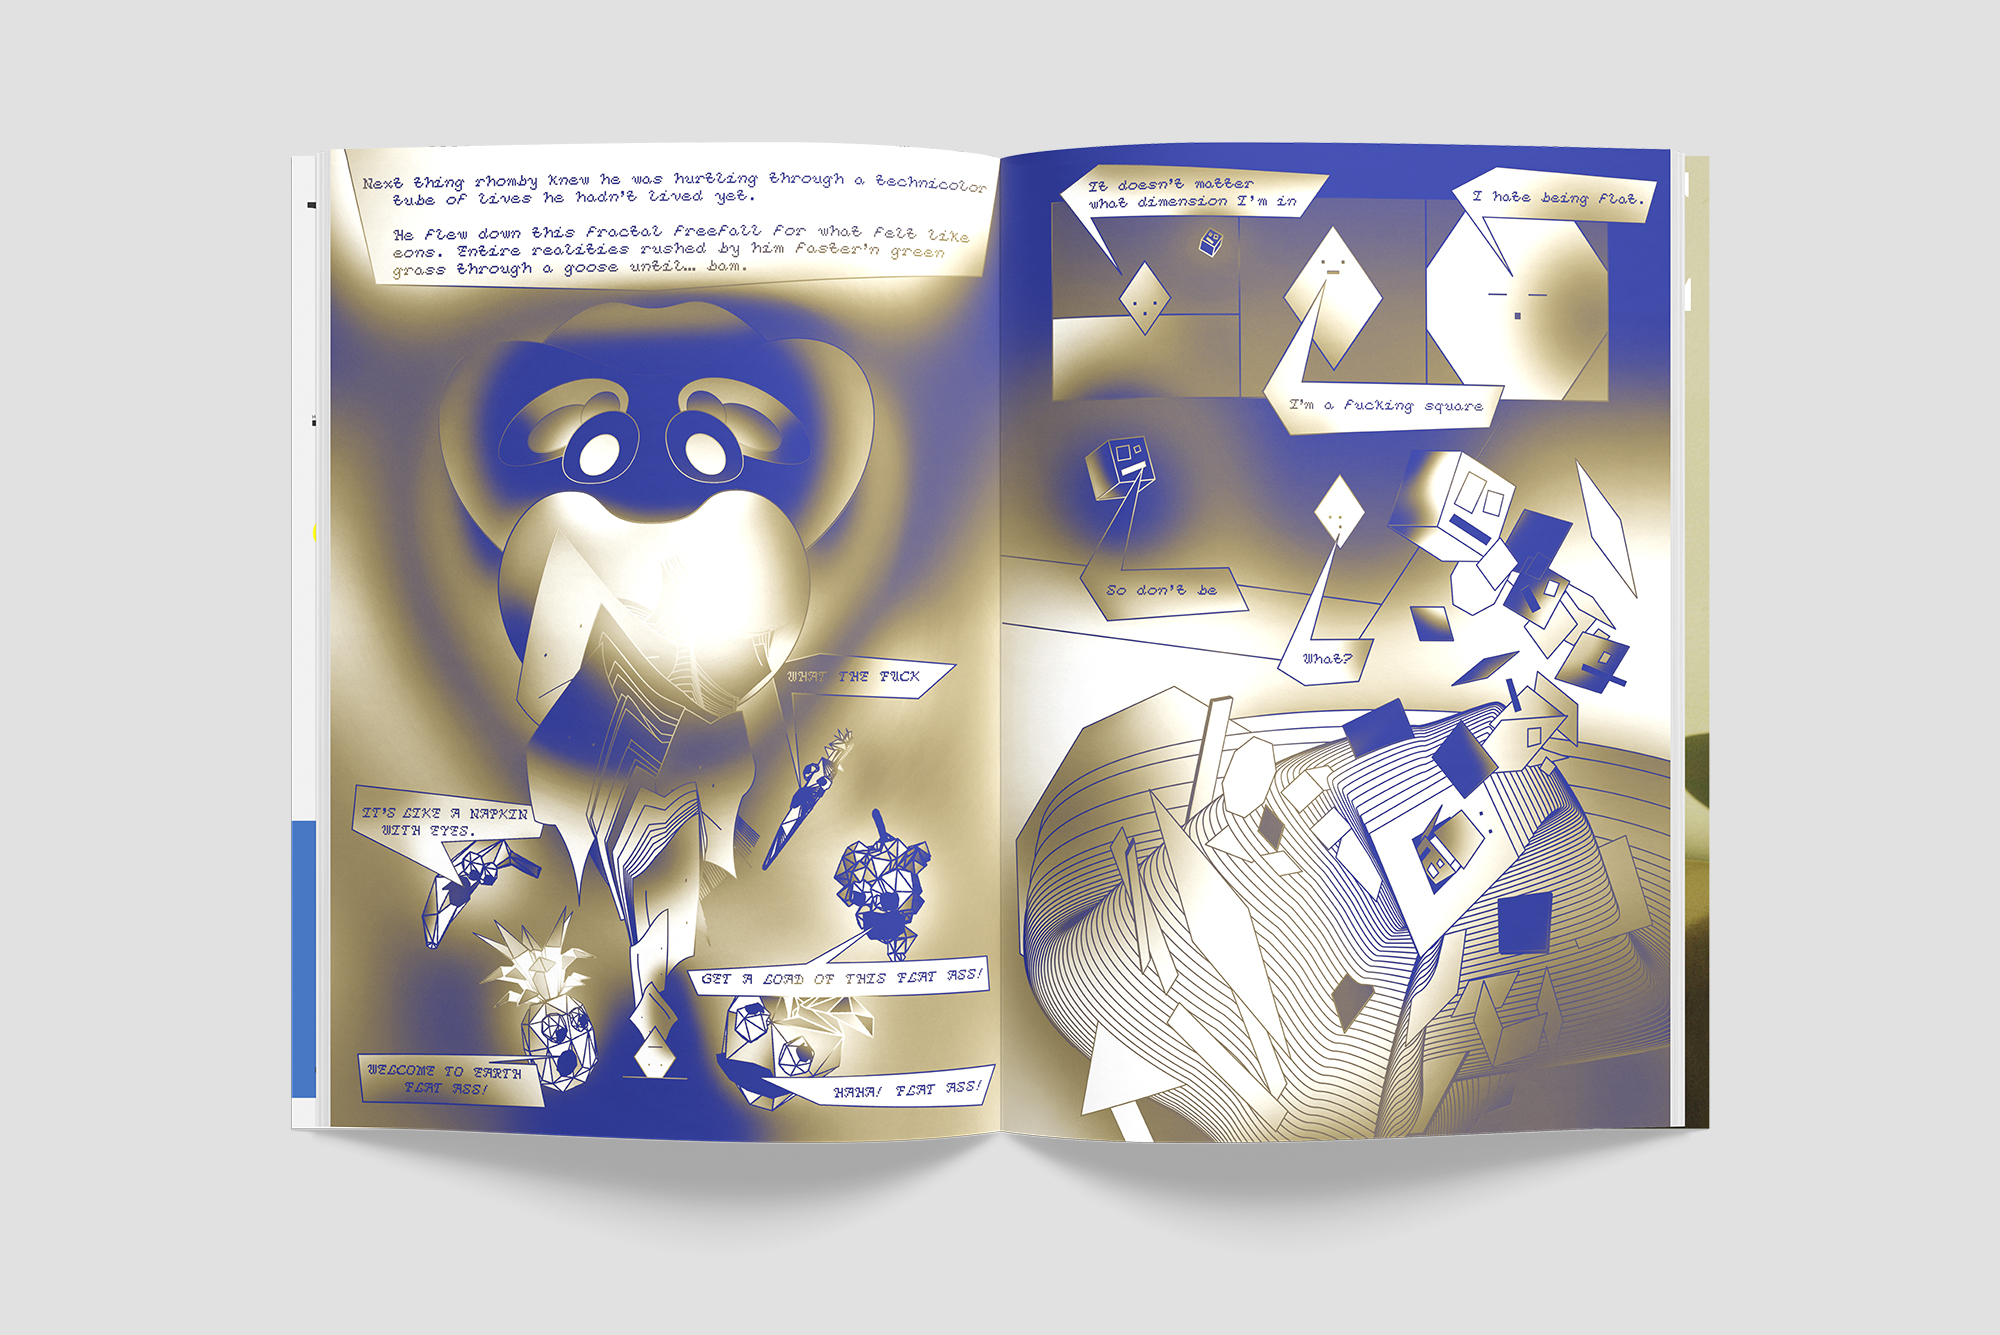 RHOMBY THE RHOMBUS AND THE TALE OF THE INTERDIMENSIONAL ASS  Illustrated and designed by Erik Carter and Christina Janus